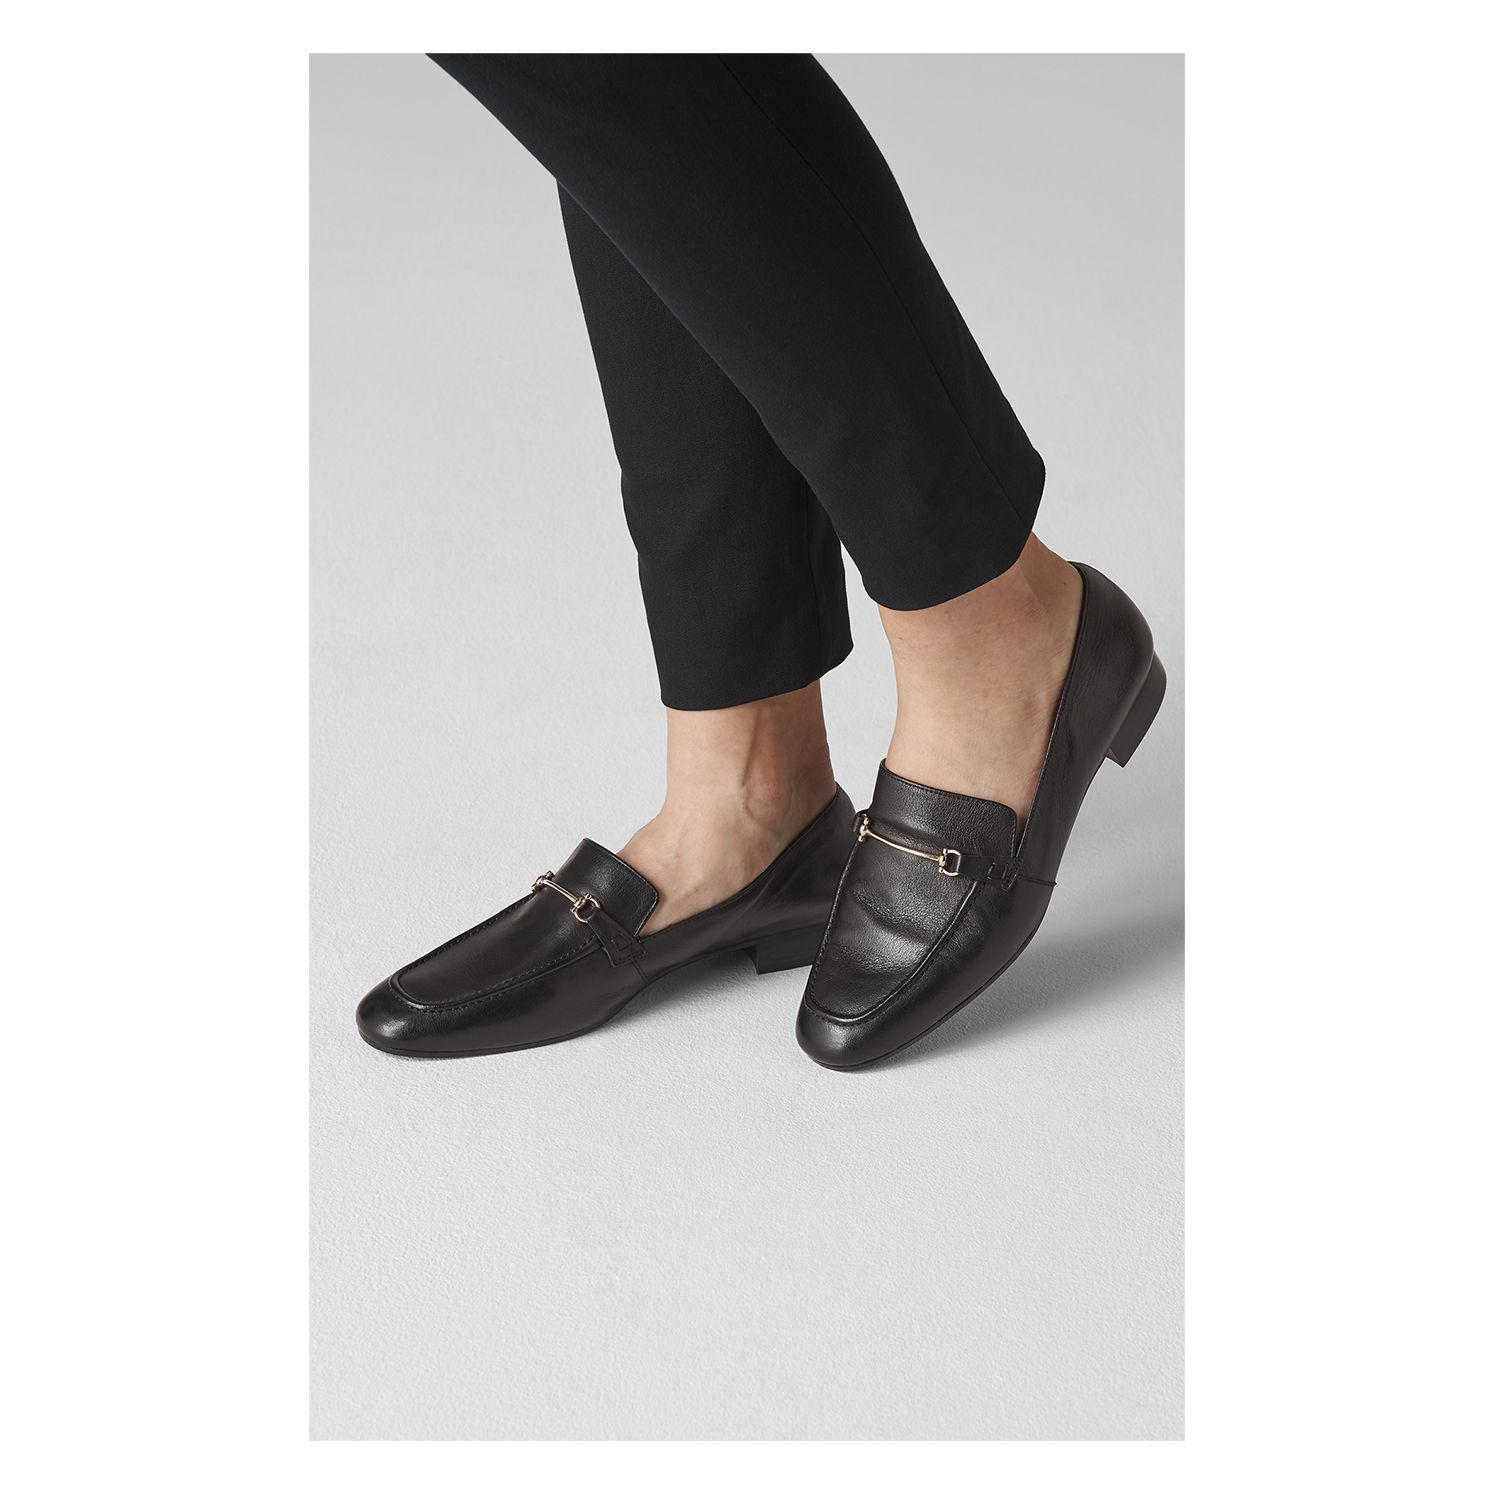 489e4b6b4e5 Whistles Chancery Loafer in Black - Save 30.1775147928994% - Lyst